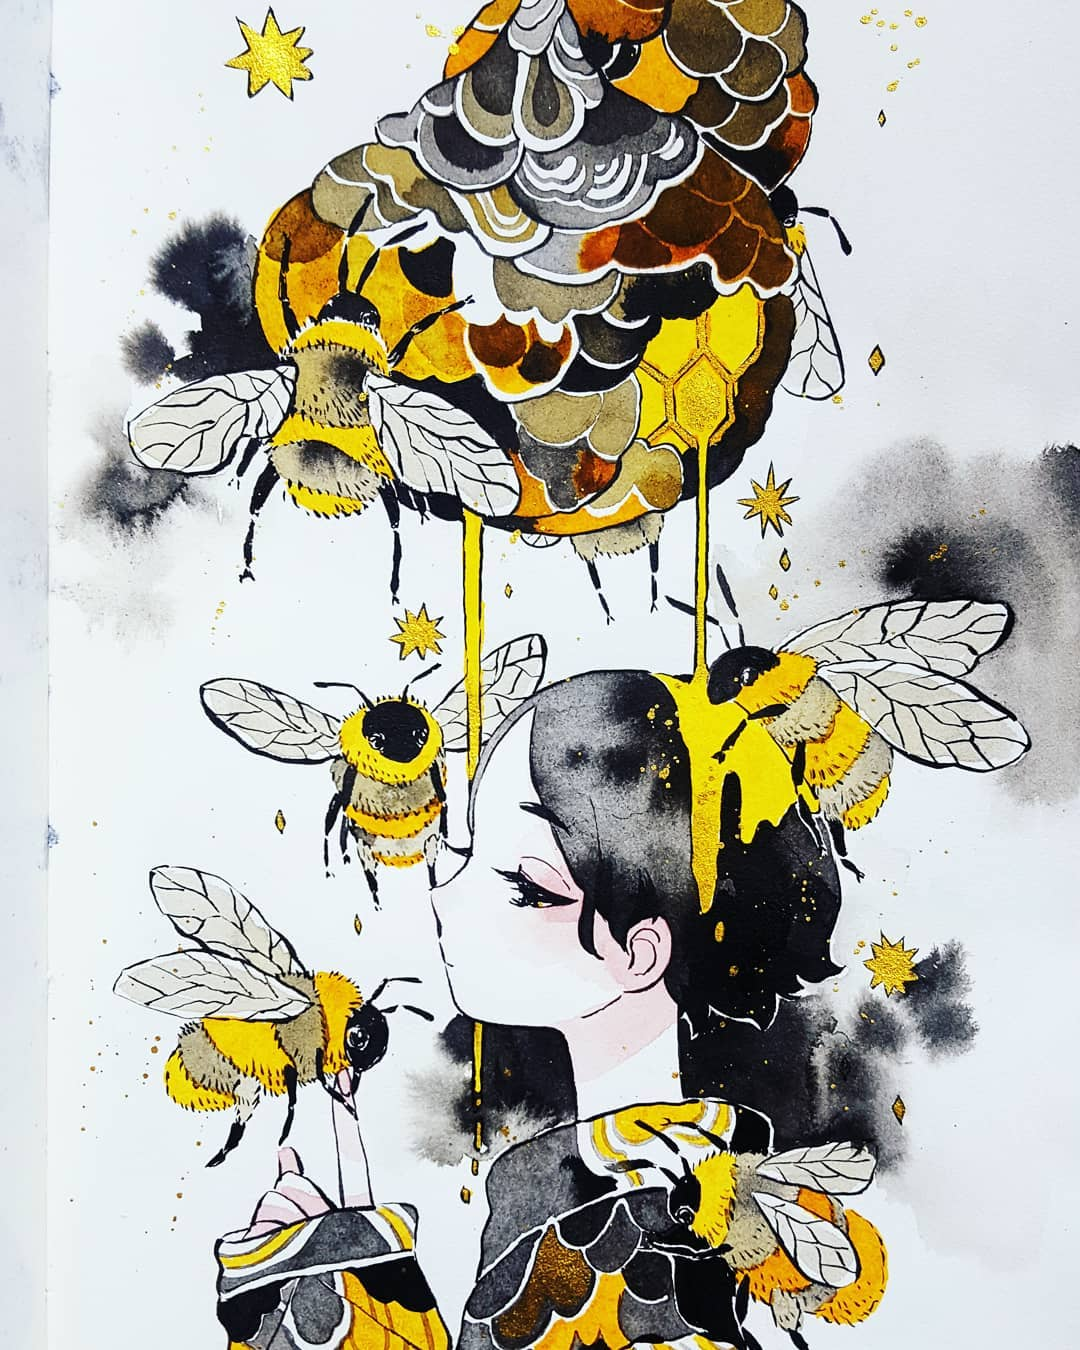 1girl bee beehive black_hair bug from_side half-closed_eyes highres honey honeycomb_(pattern) index_finger_raised insect long_sleeves maruti_bitamin original oversized_insect profile short_hair striped traditional_media upper_body watercolor_(medium) wings